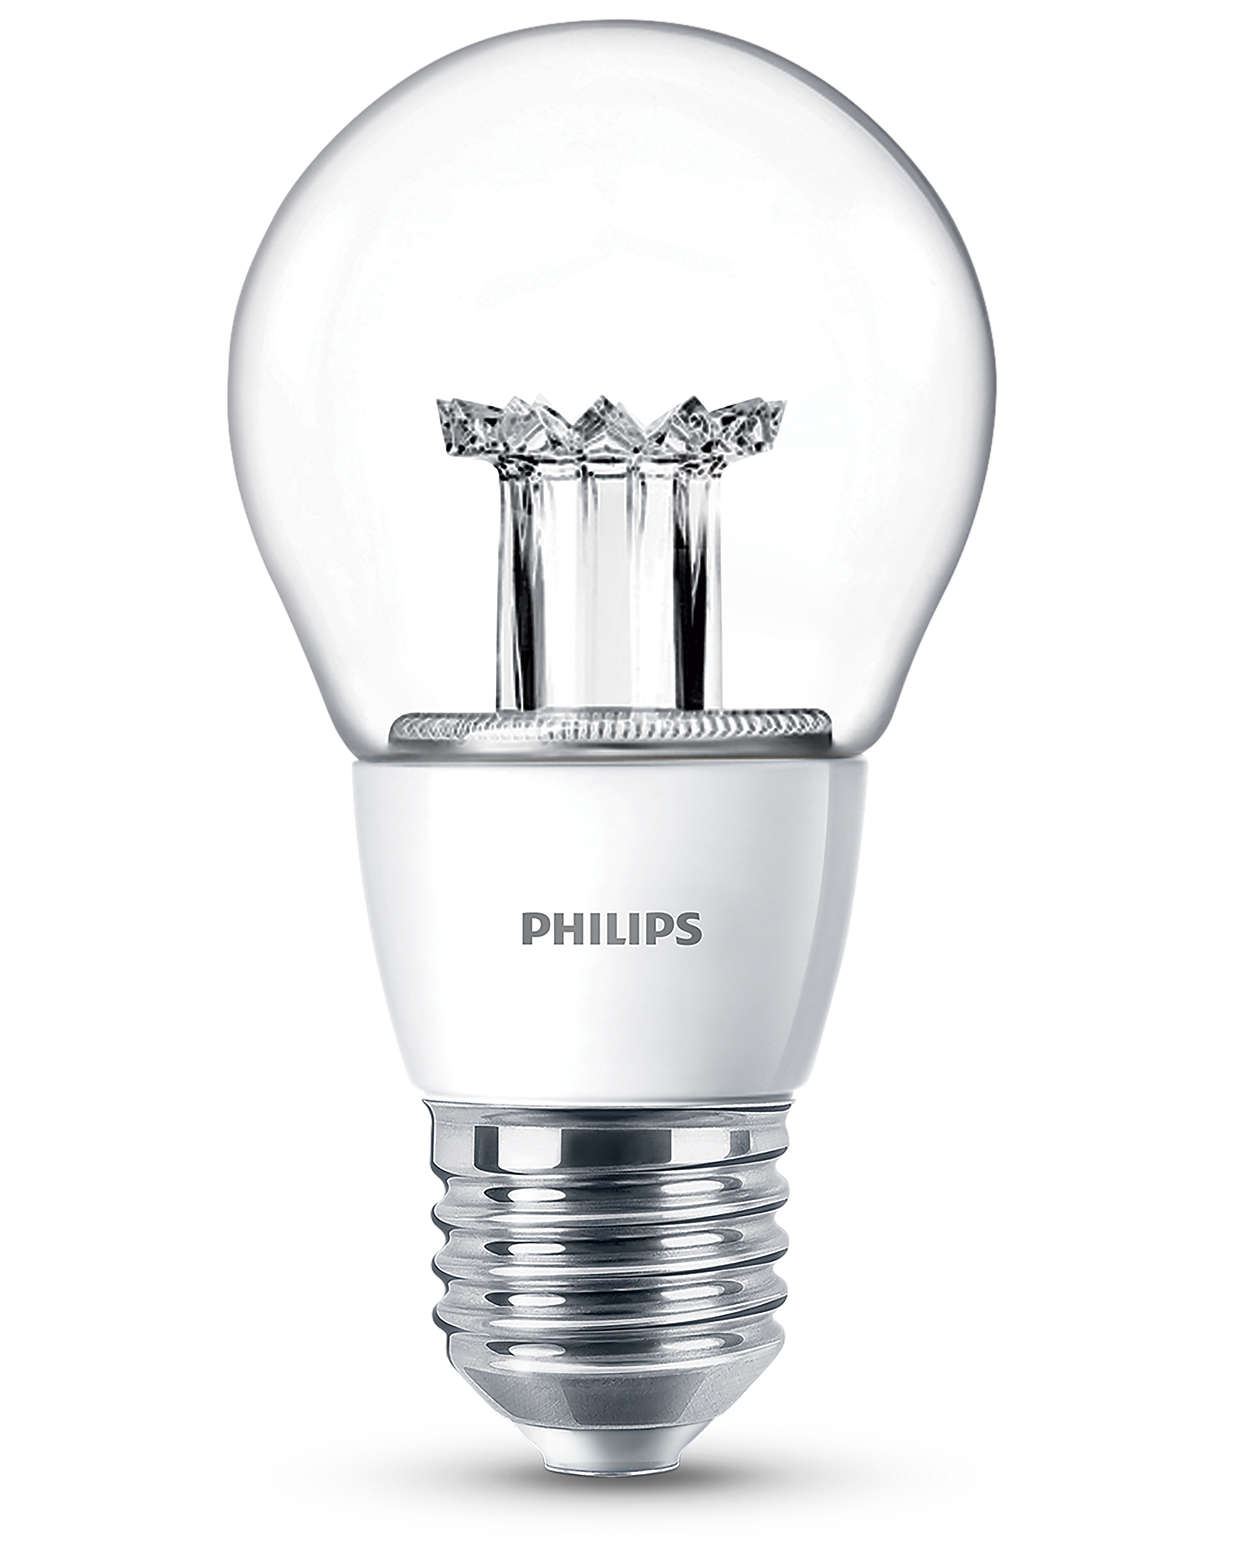 Fabulous LED Glühlampe (dimmbar) 8718291762461 | Philips KO86